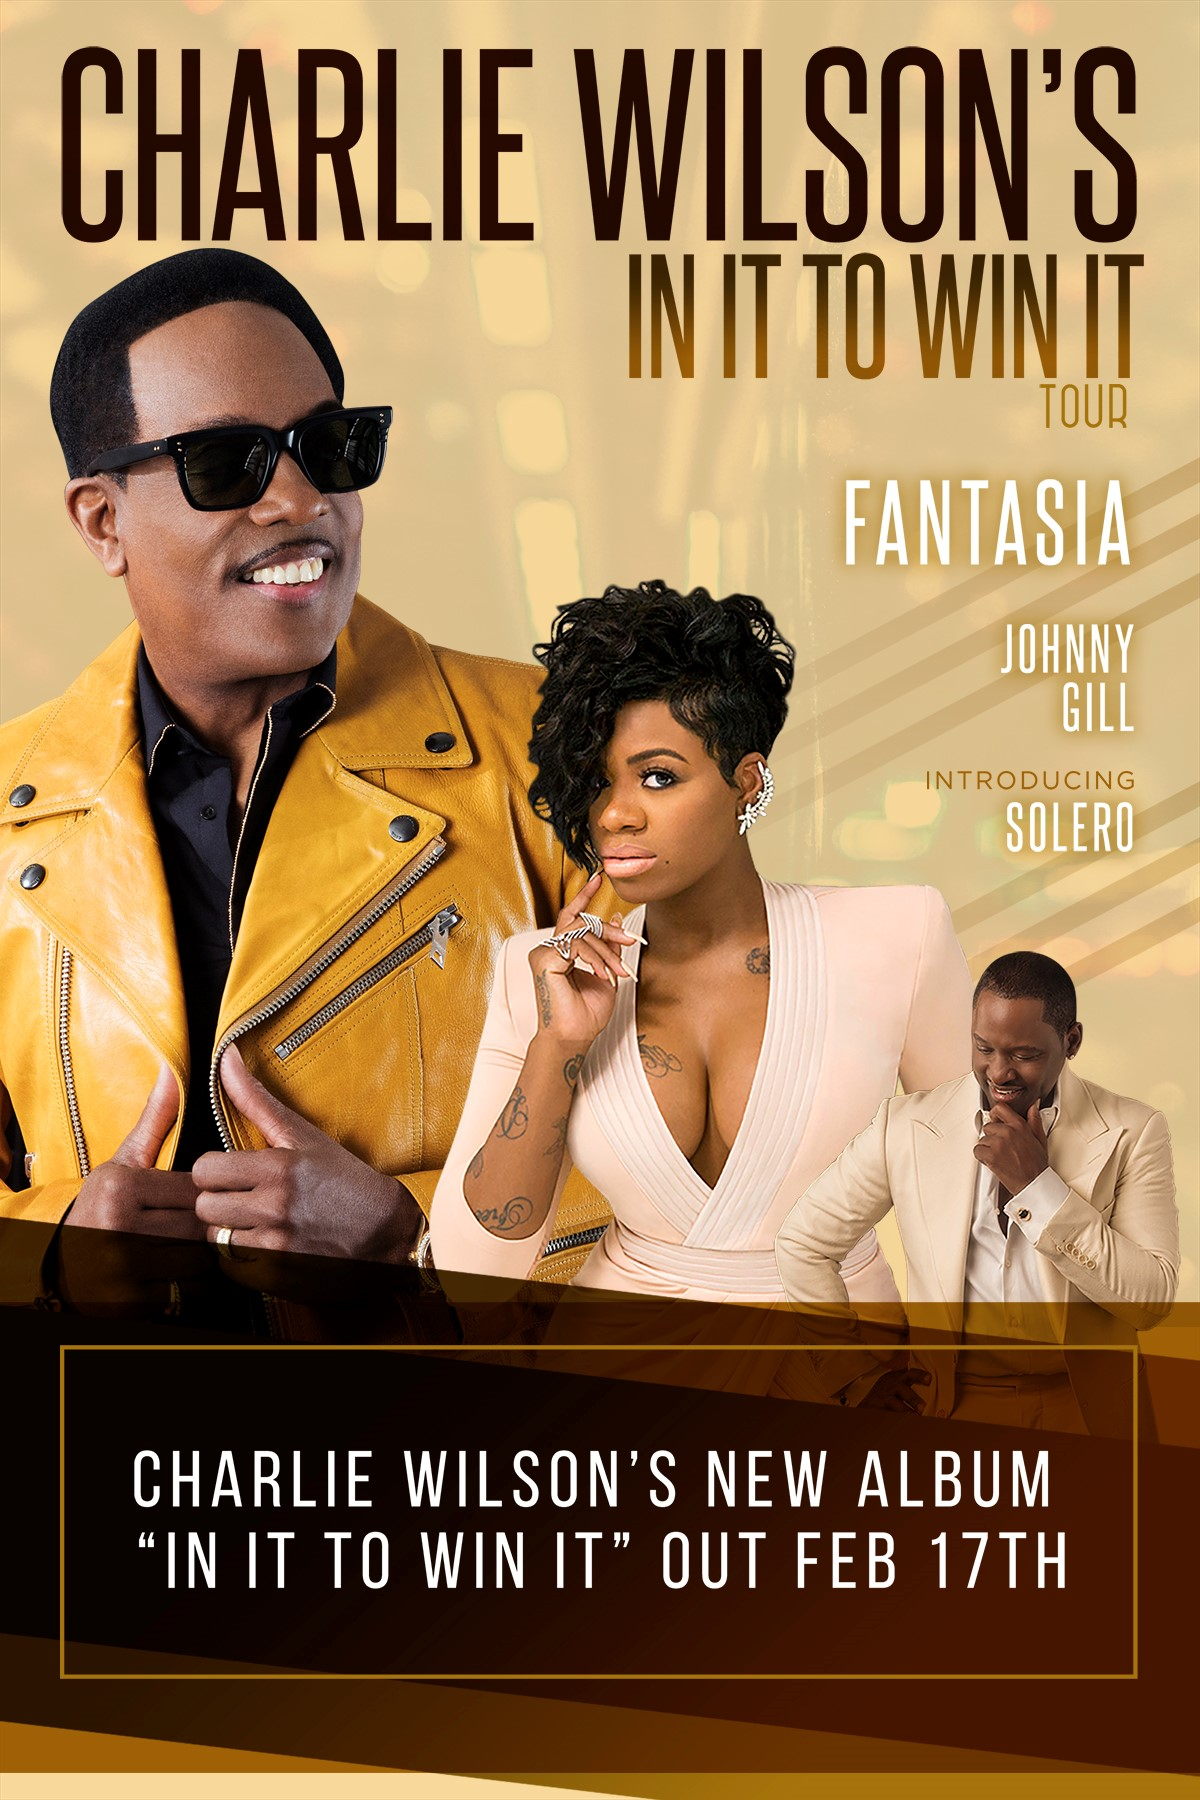 Charlie Wilson In It to Win It Tour